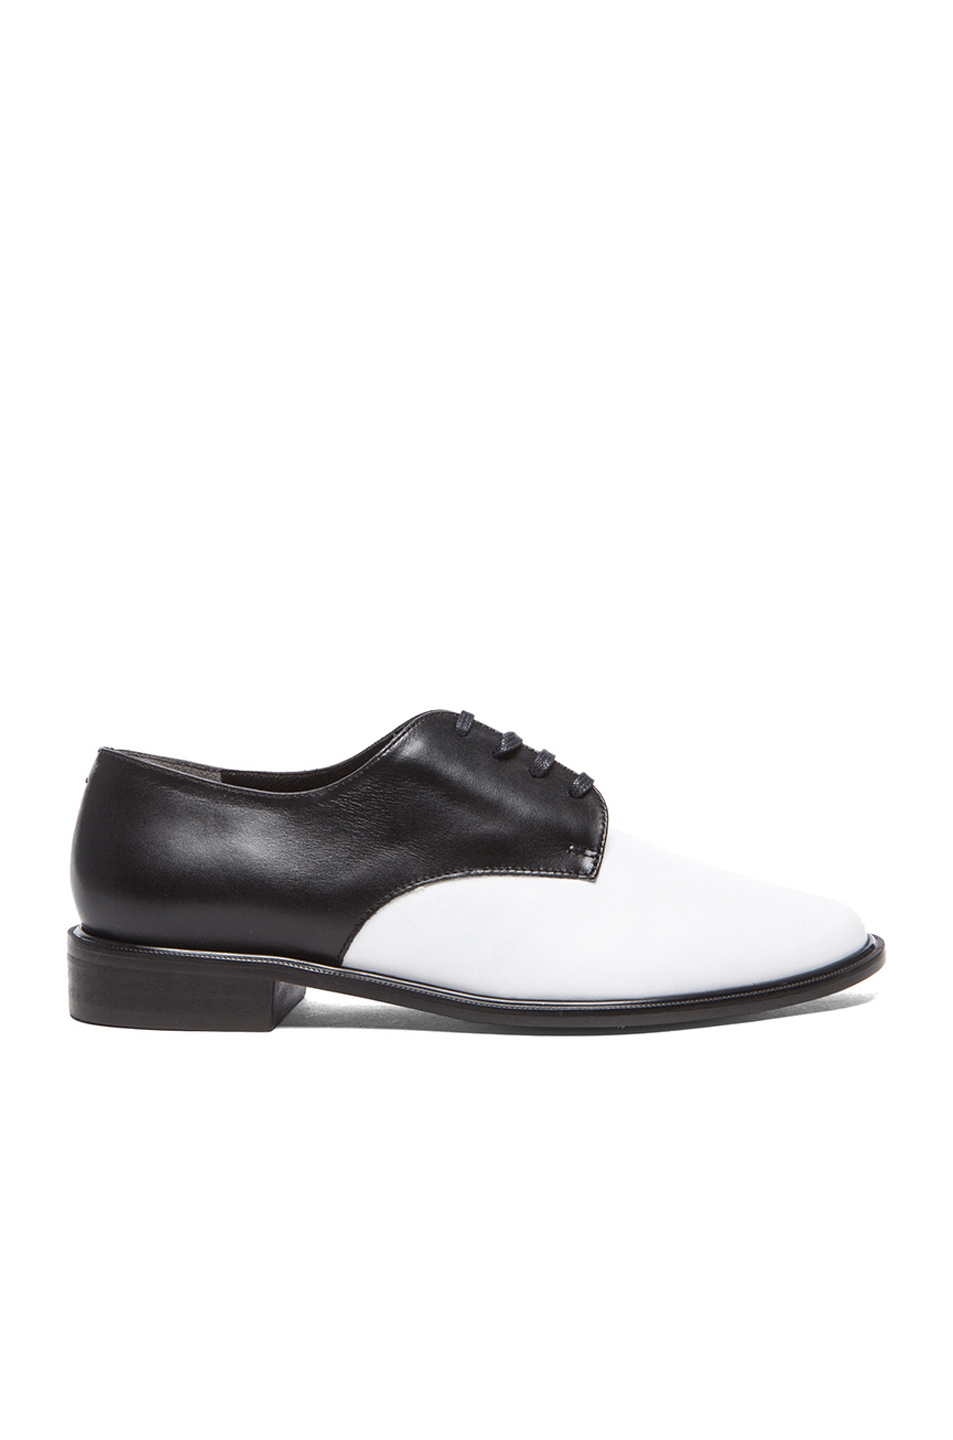 Charli lace up shoes - Black Robert Clergerie Otpp57